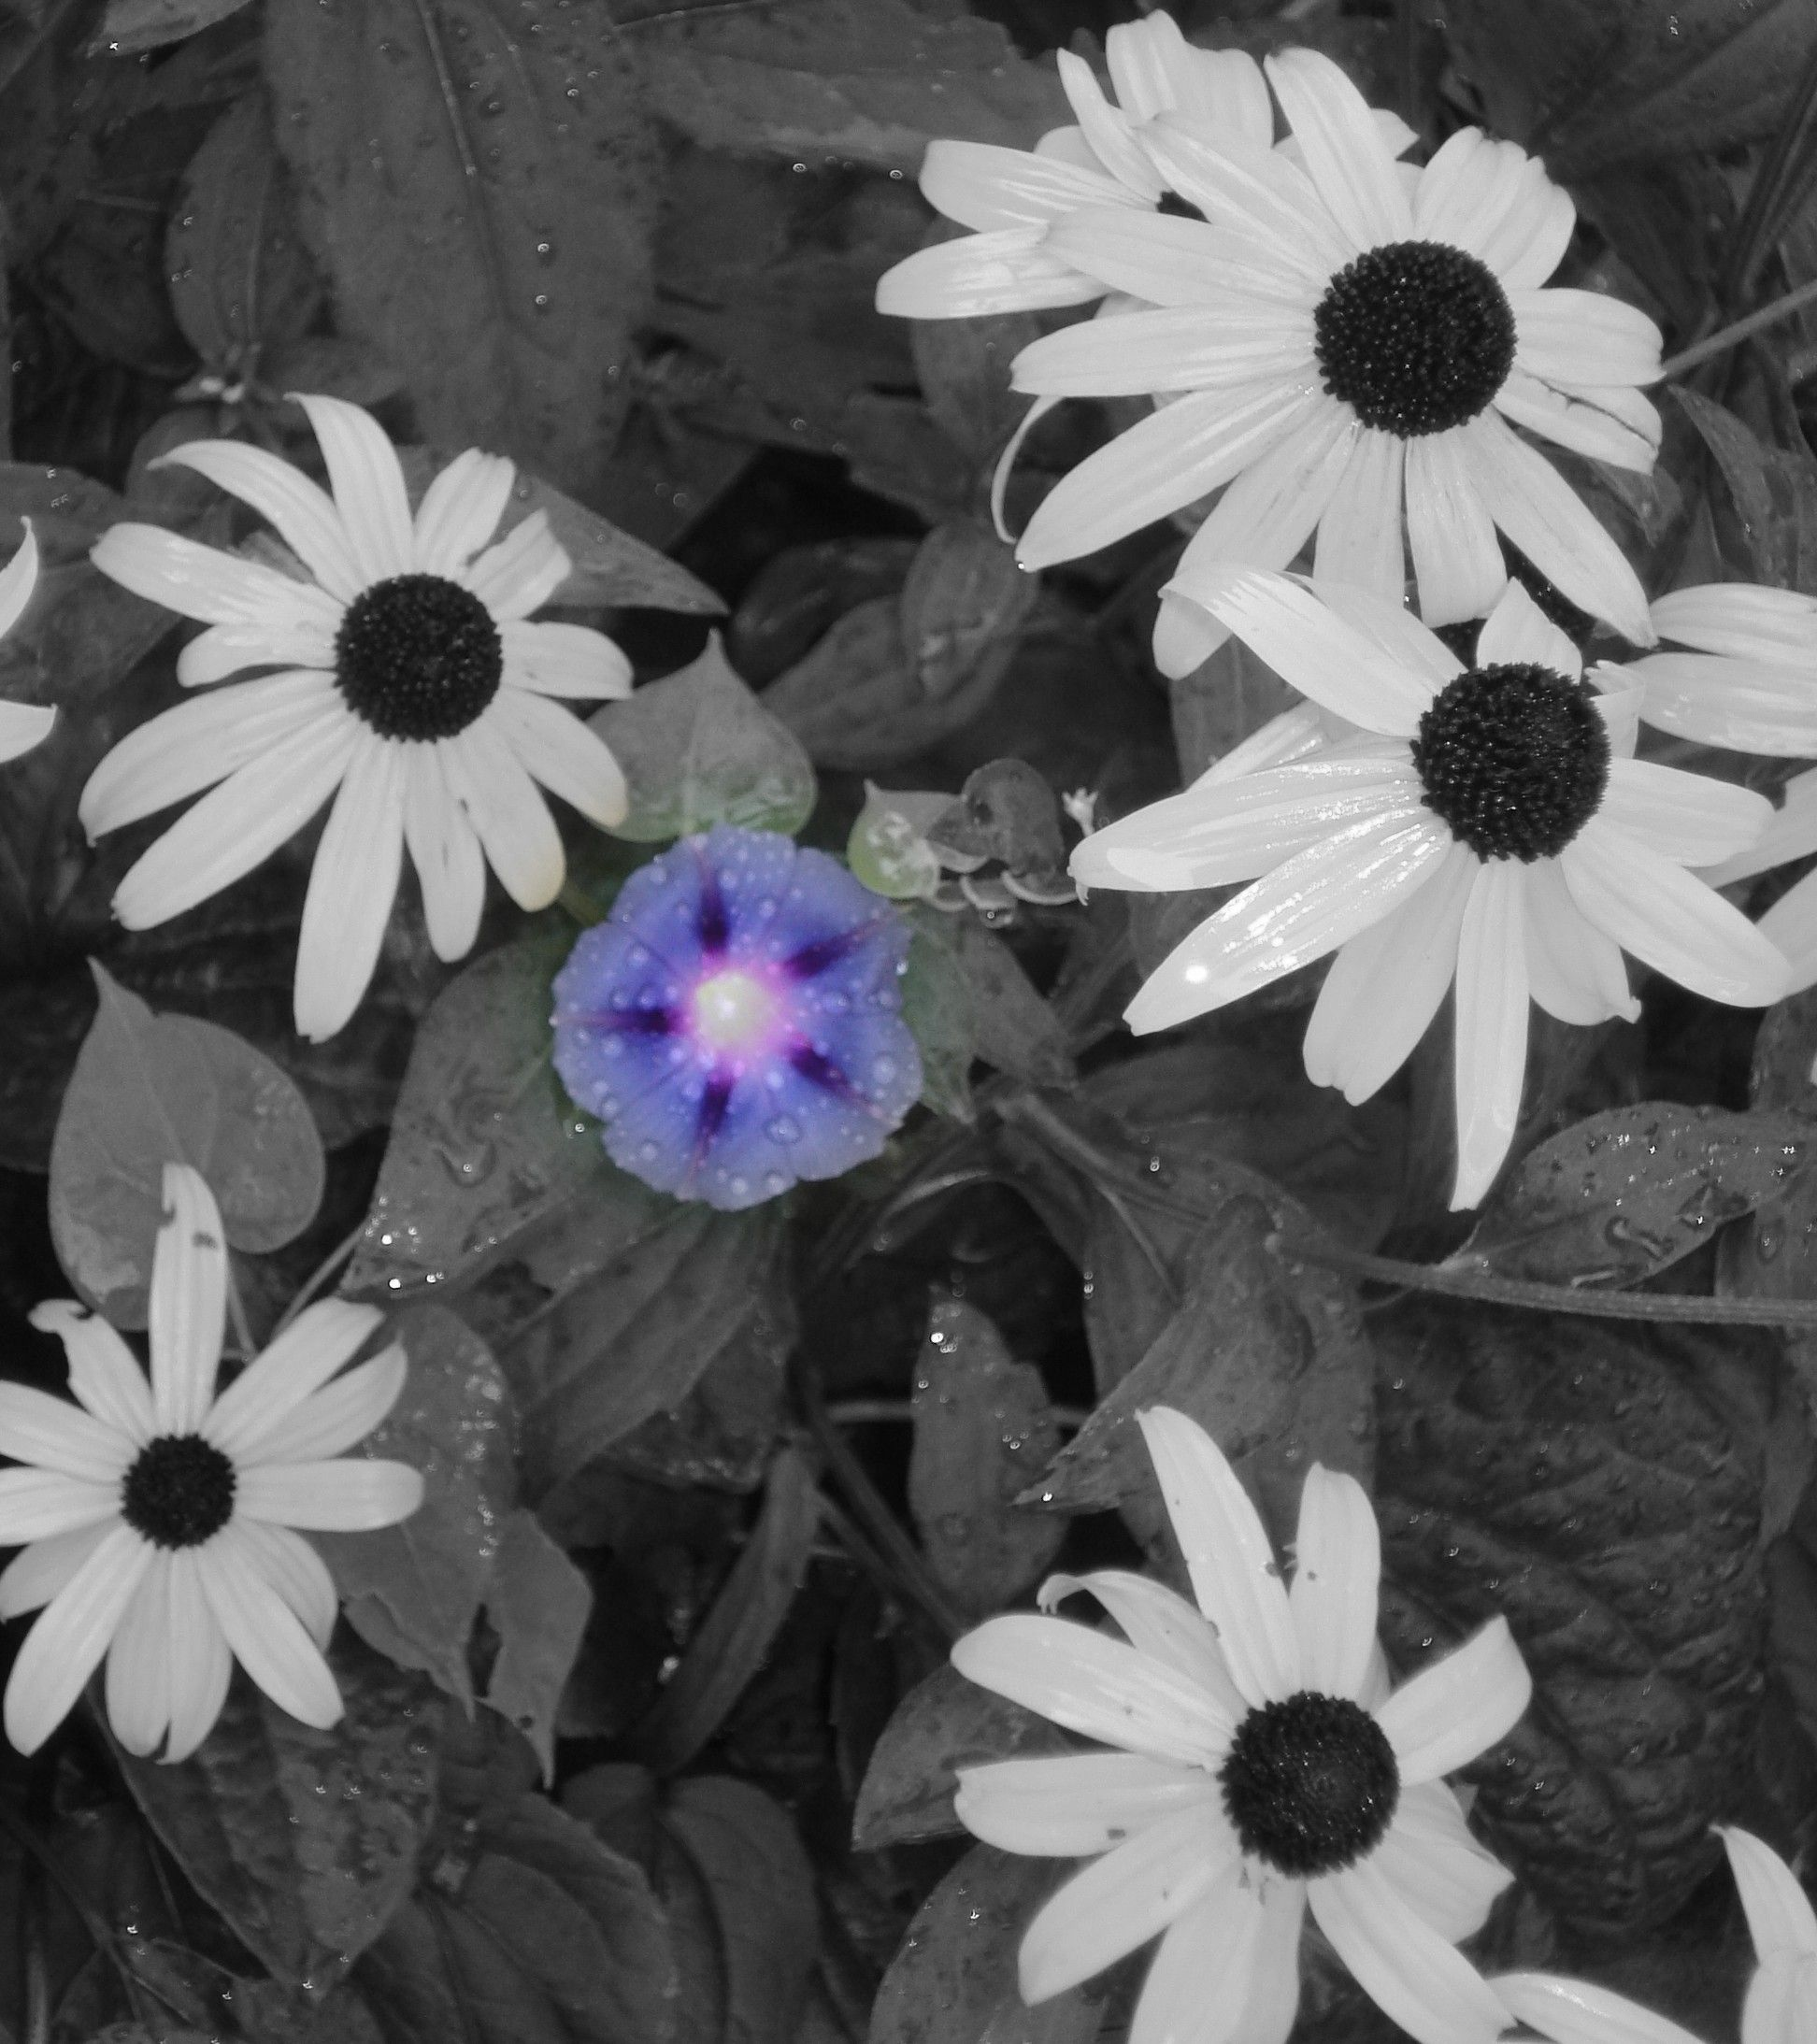 Petunia In Color With Black And White Black Eyed Susans Photo Fun